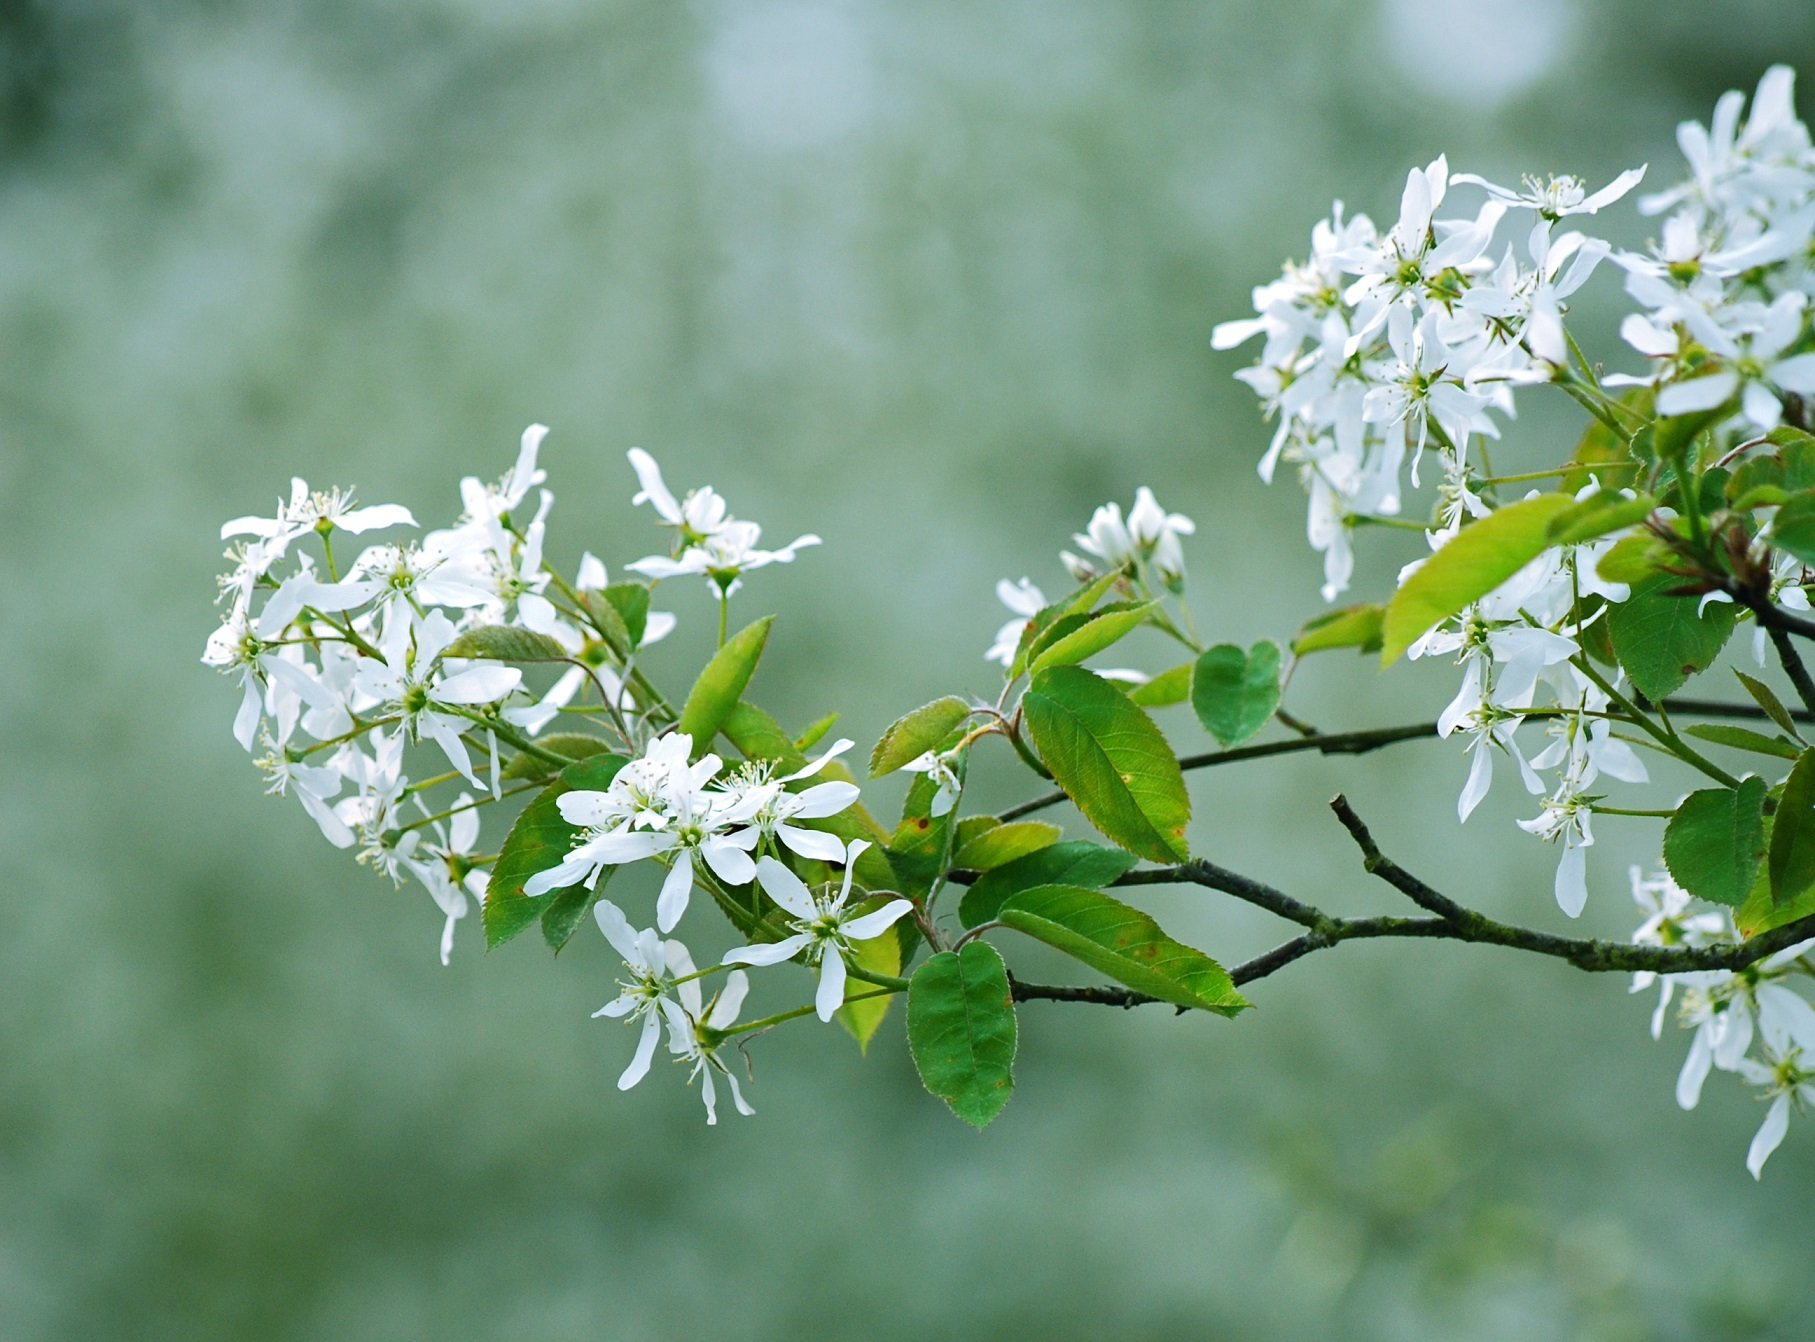 string printemps tree campaign season nature landscapes wallpapers insects flowers